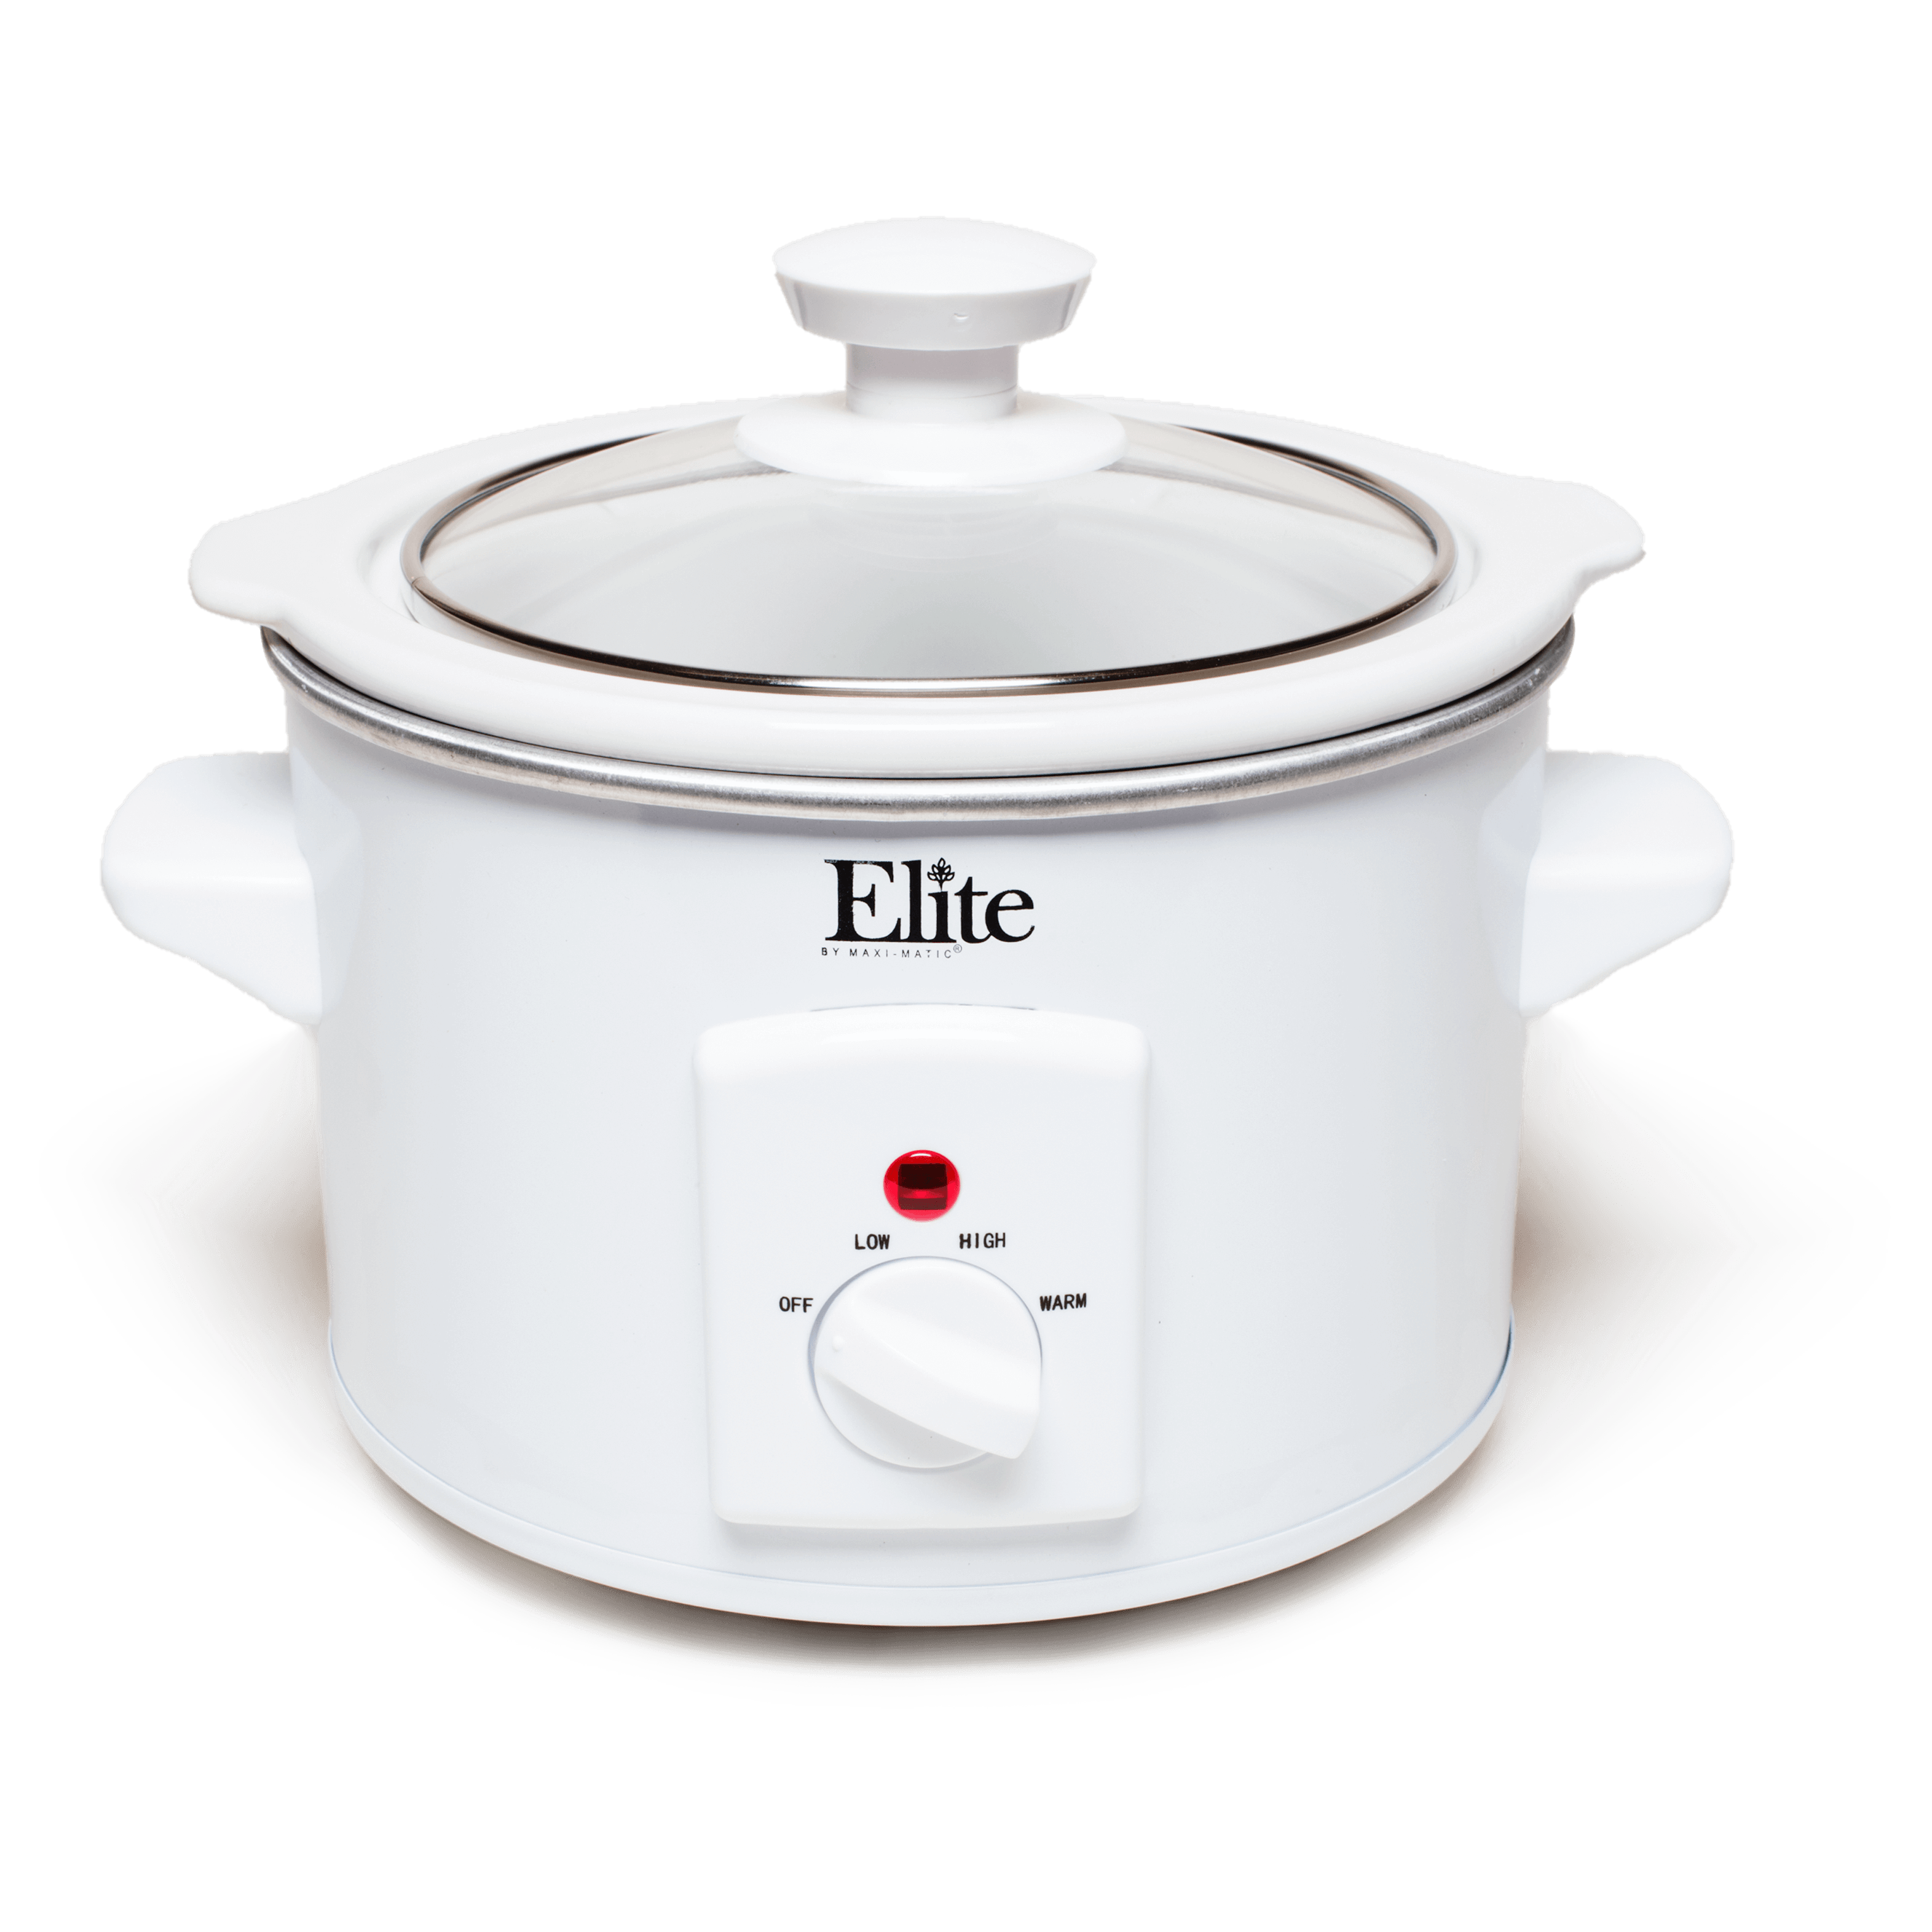 Uncategorized Cooks Kitchen Appliances browse equipment reviews for small appliances cooks illustrated mini slow cookers